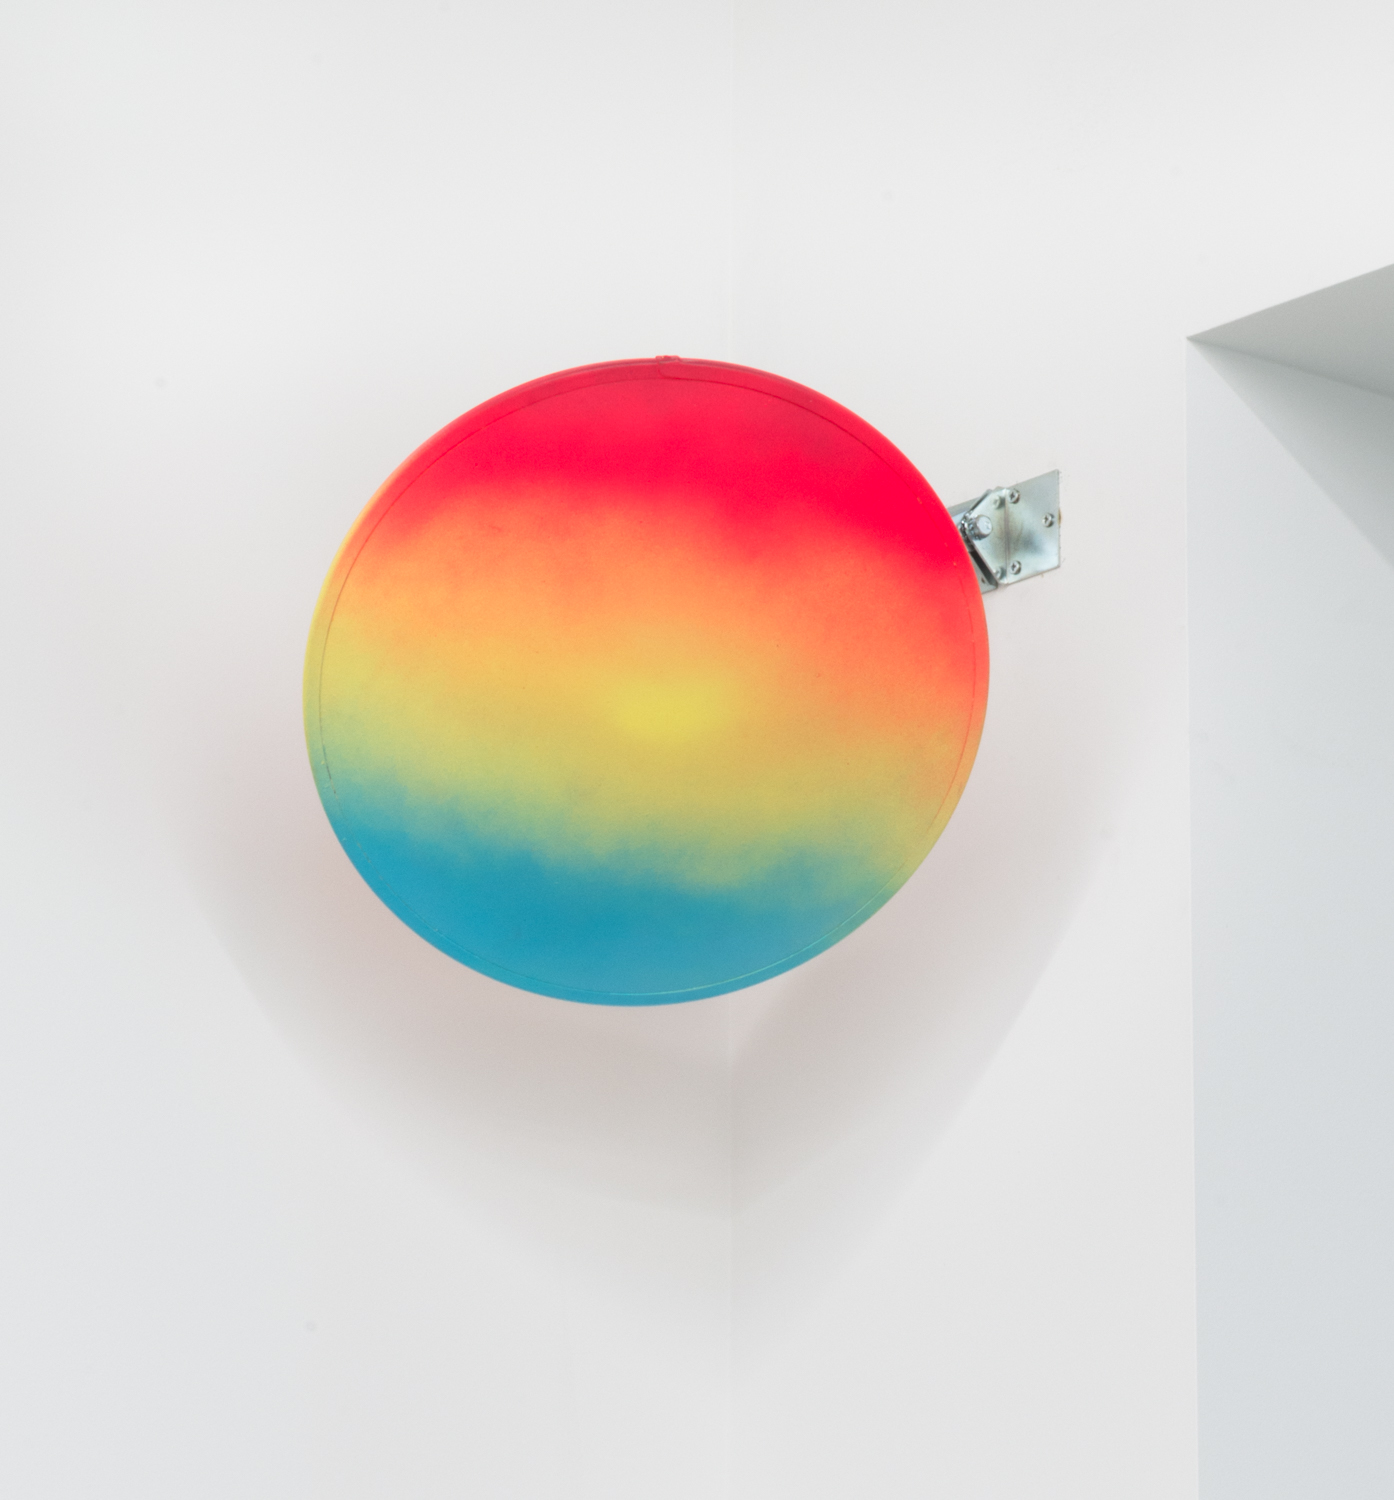 Danny Giles  Late Romance (II)  2015 Spray paint on security mirror 18h x 18w x 3 ½d in DG001